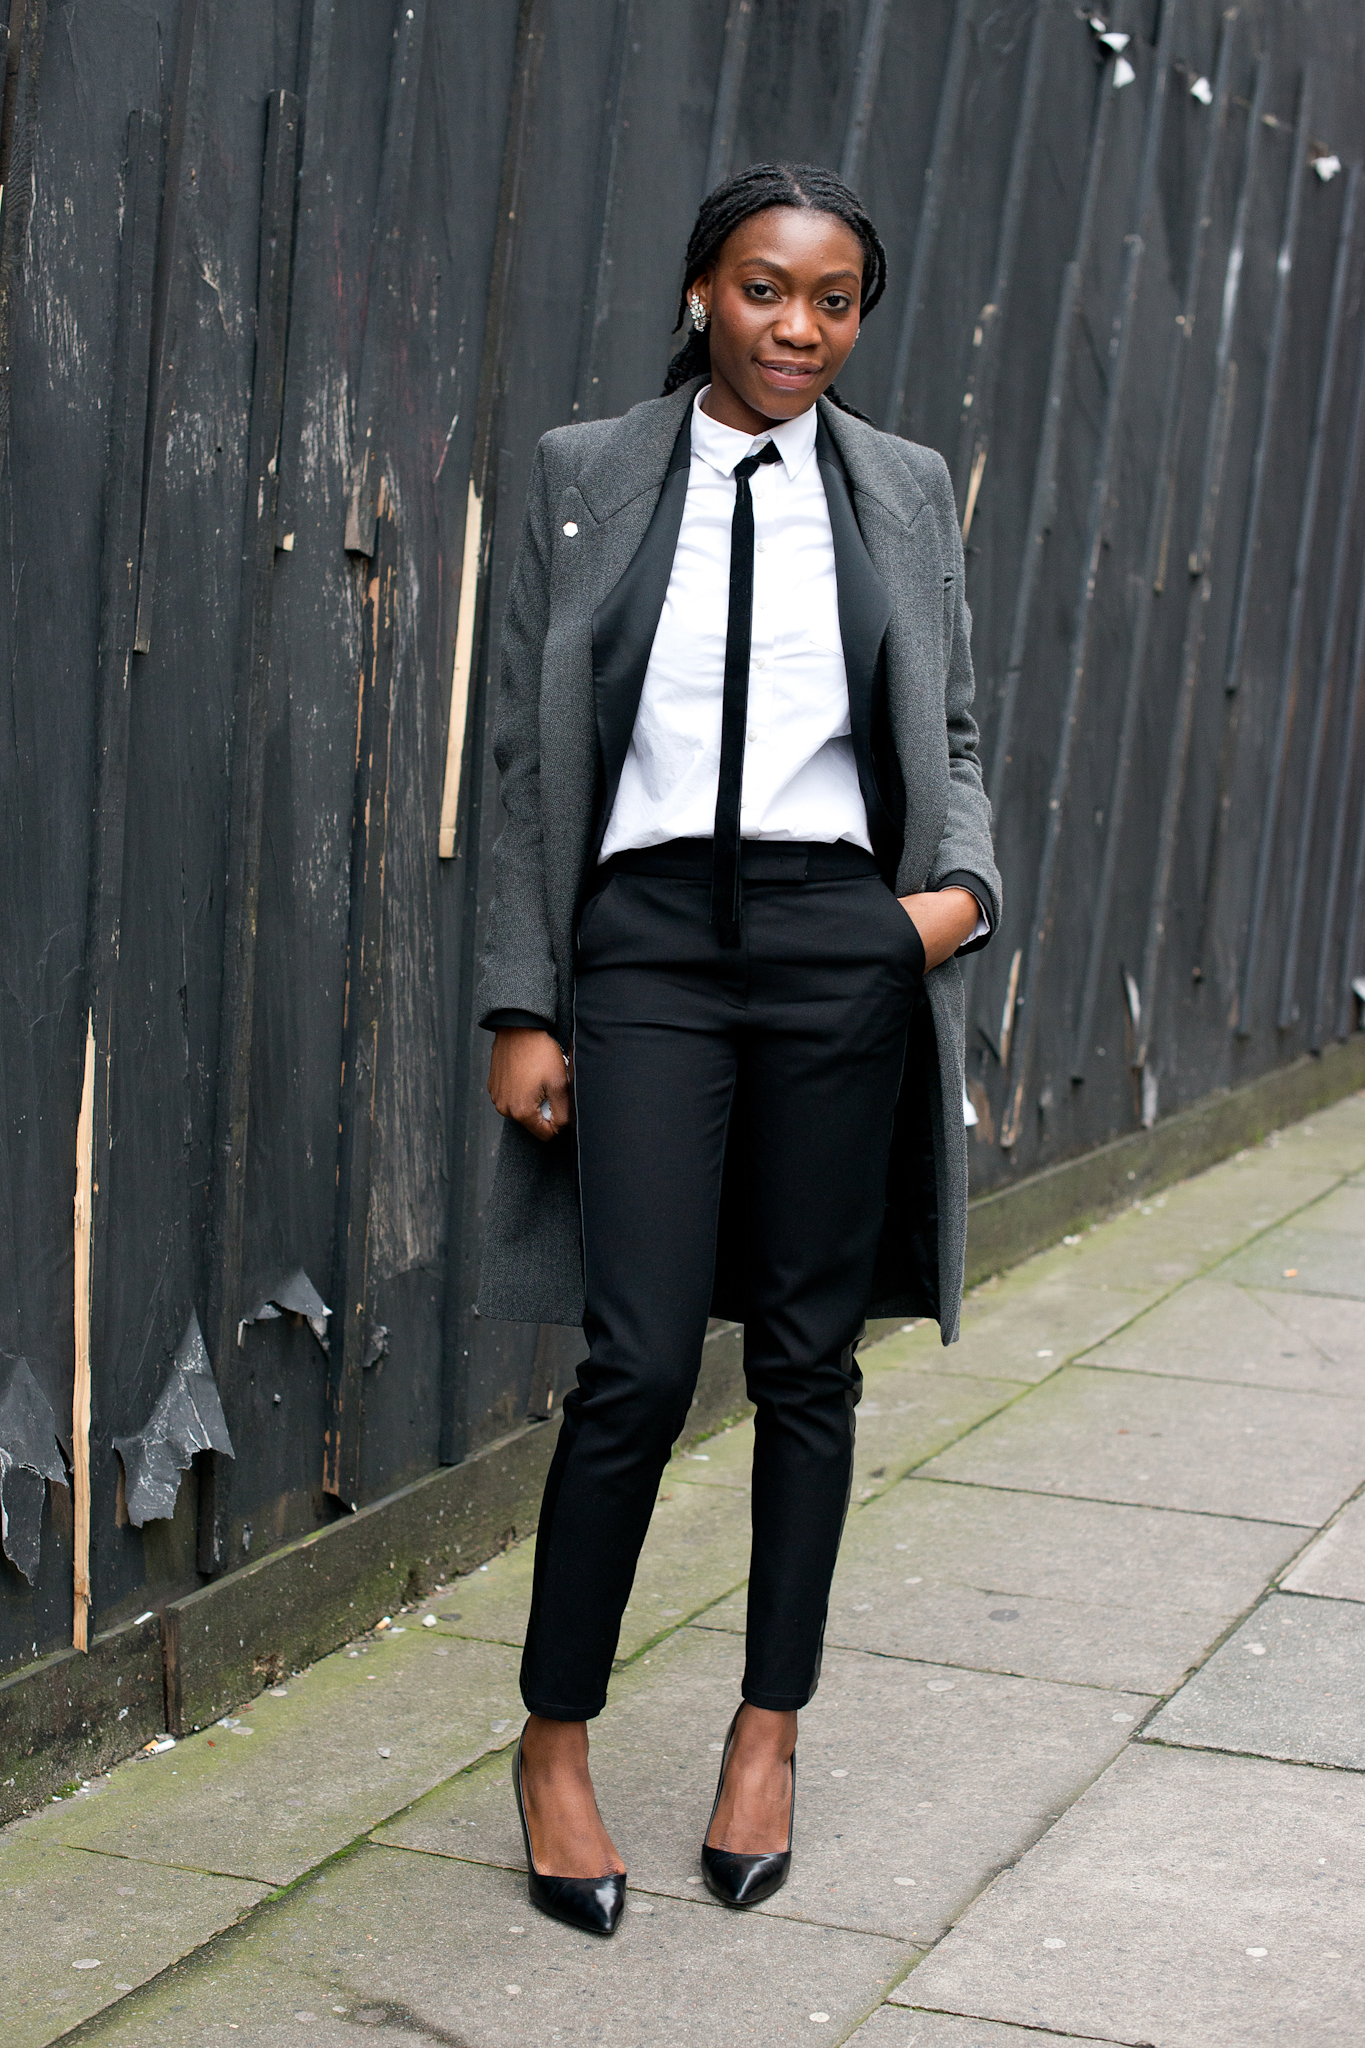 Menswear With A Woman 39 S Touch Via Pointed Toe Pumps And Skinny Black Street Style The Ultra